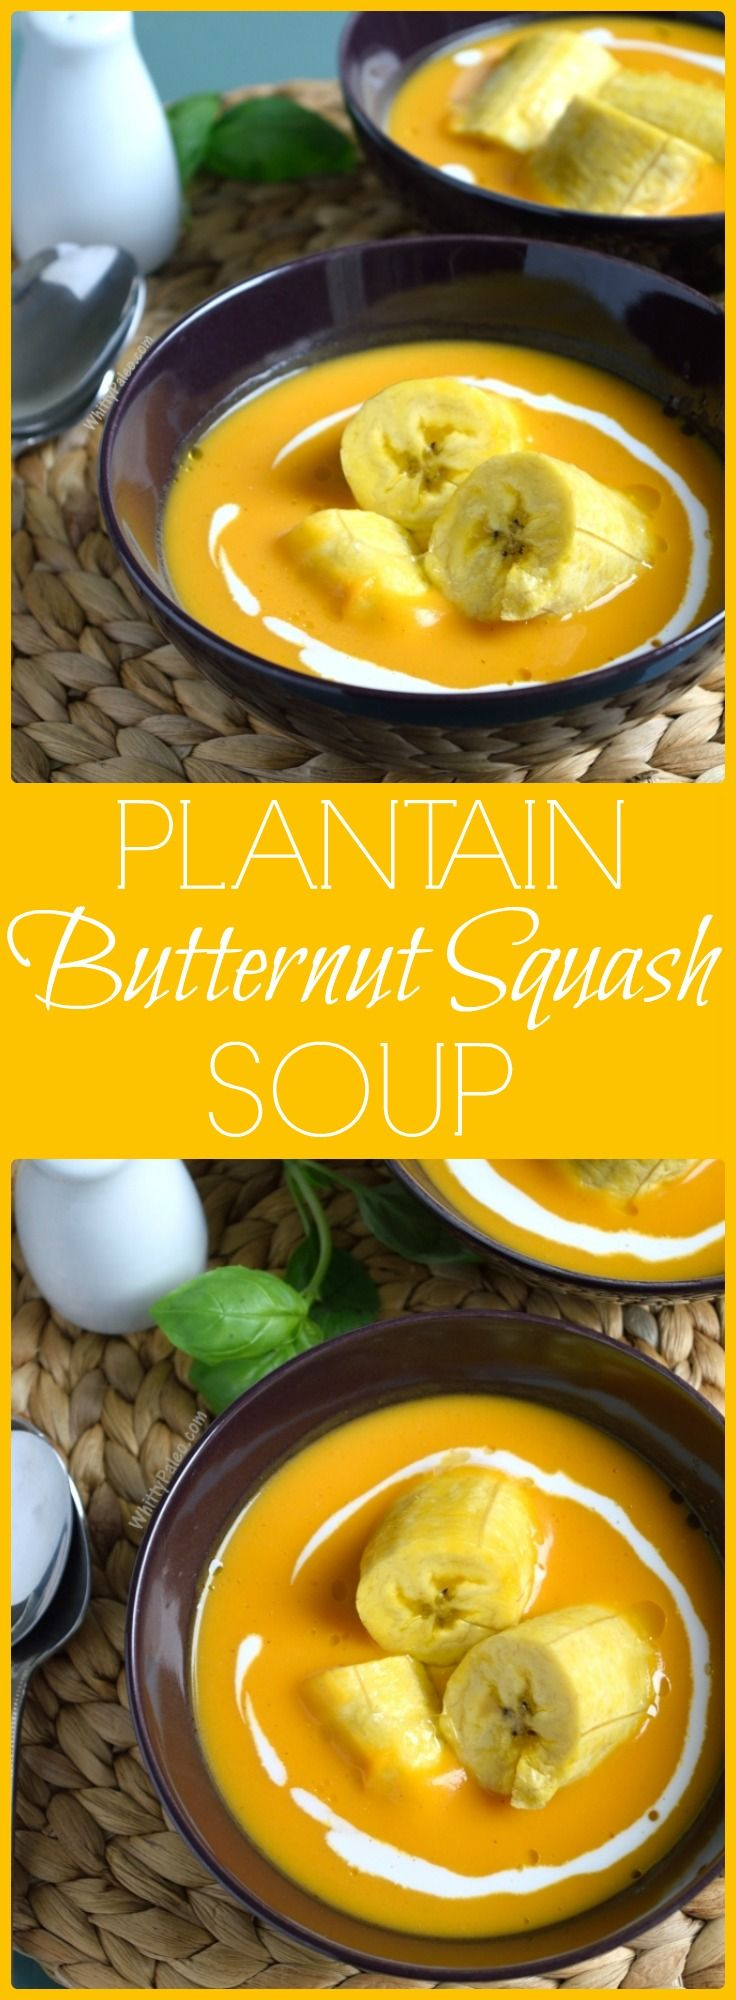 Paleo, Gluten Free and Dairy Free Sweet Boiled Plantains and Butternut Squash Soup from WhittyPaleo.com